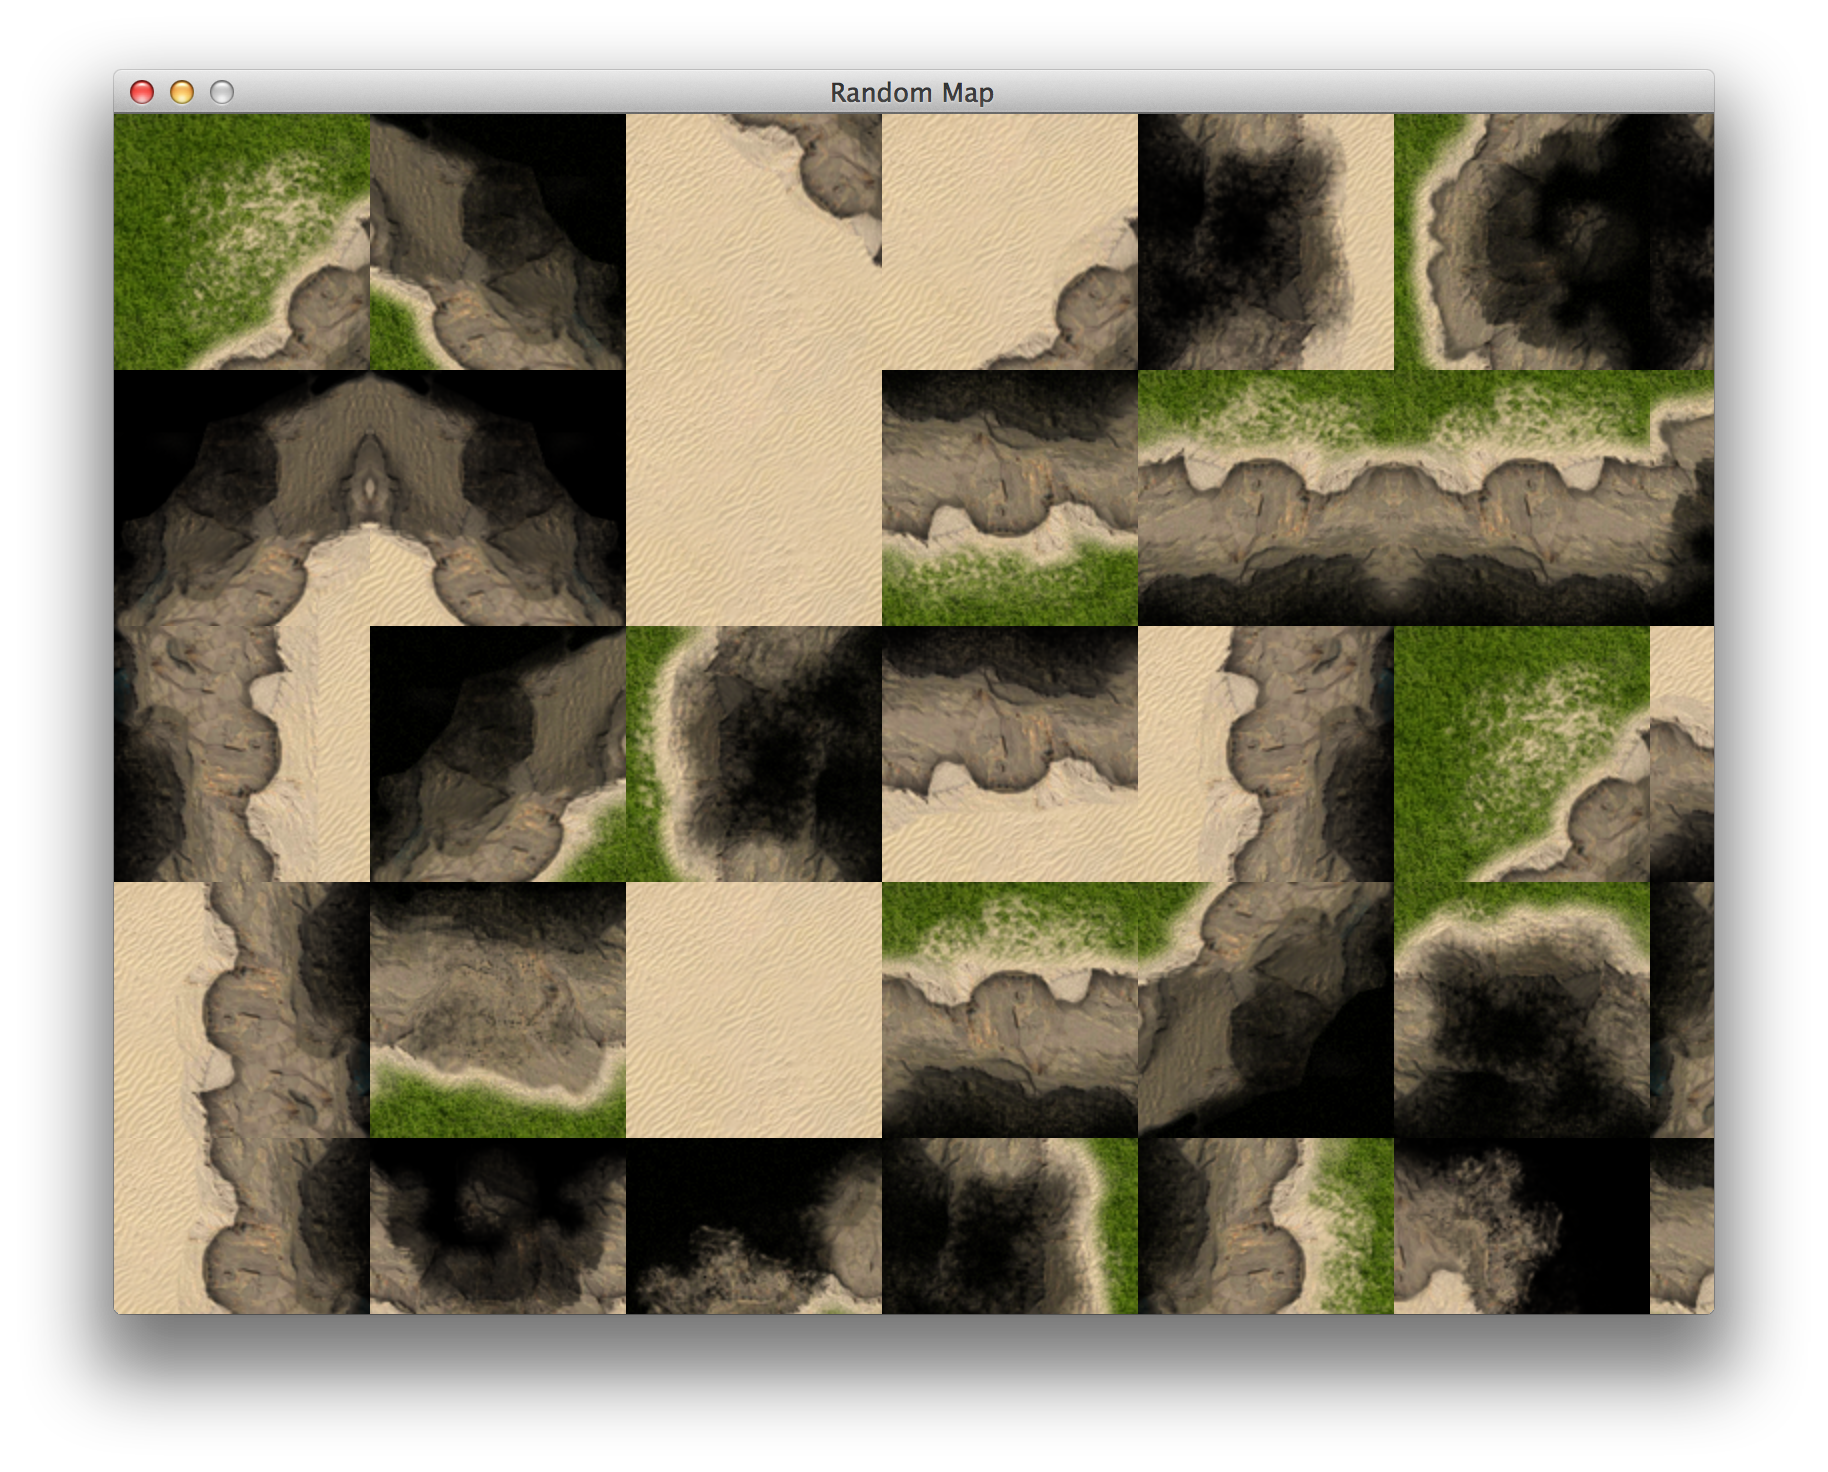 Map filled with *seamless* random tiles